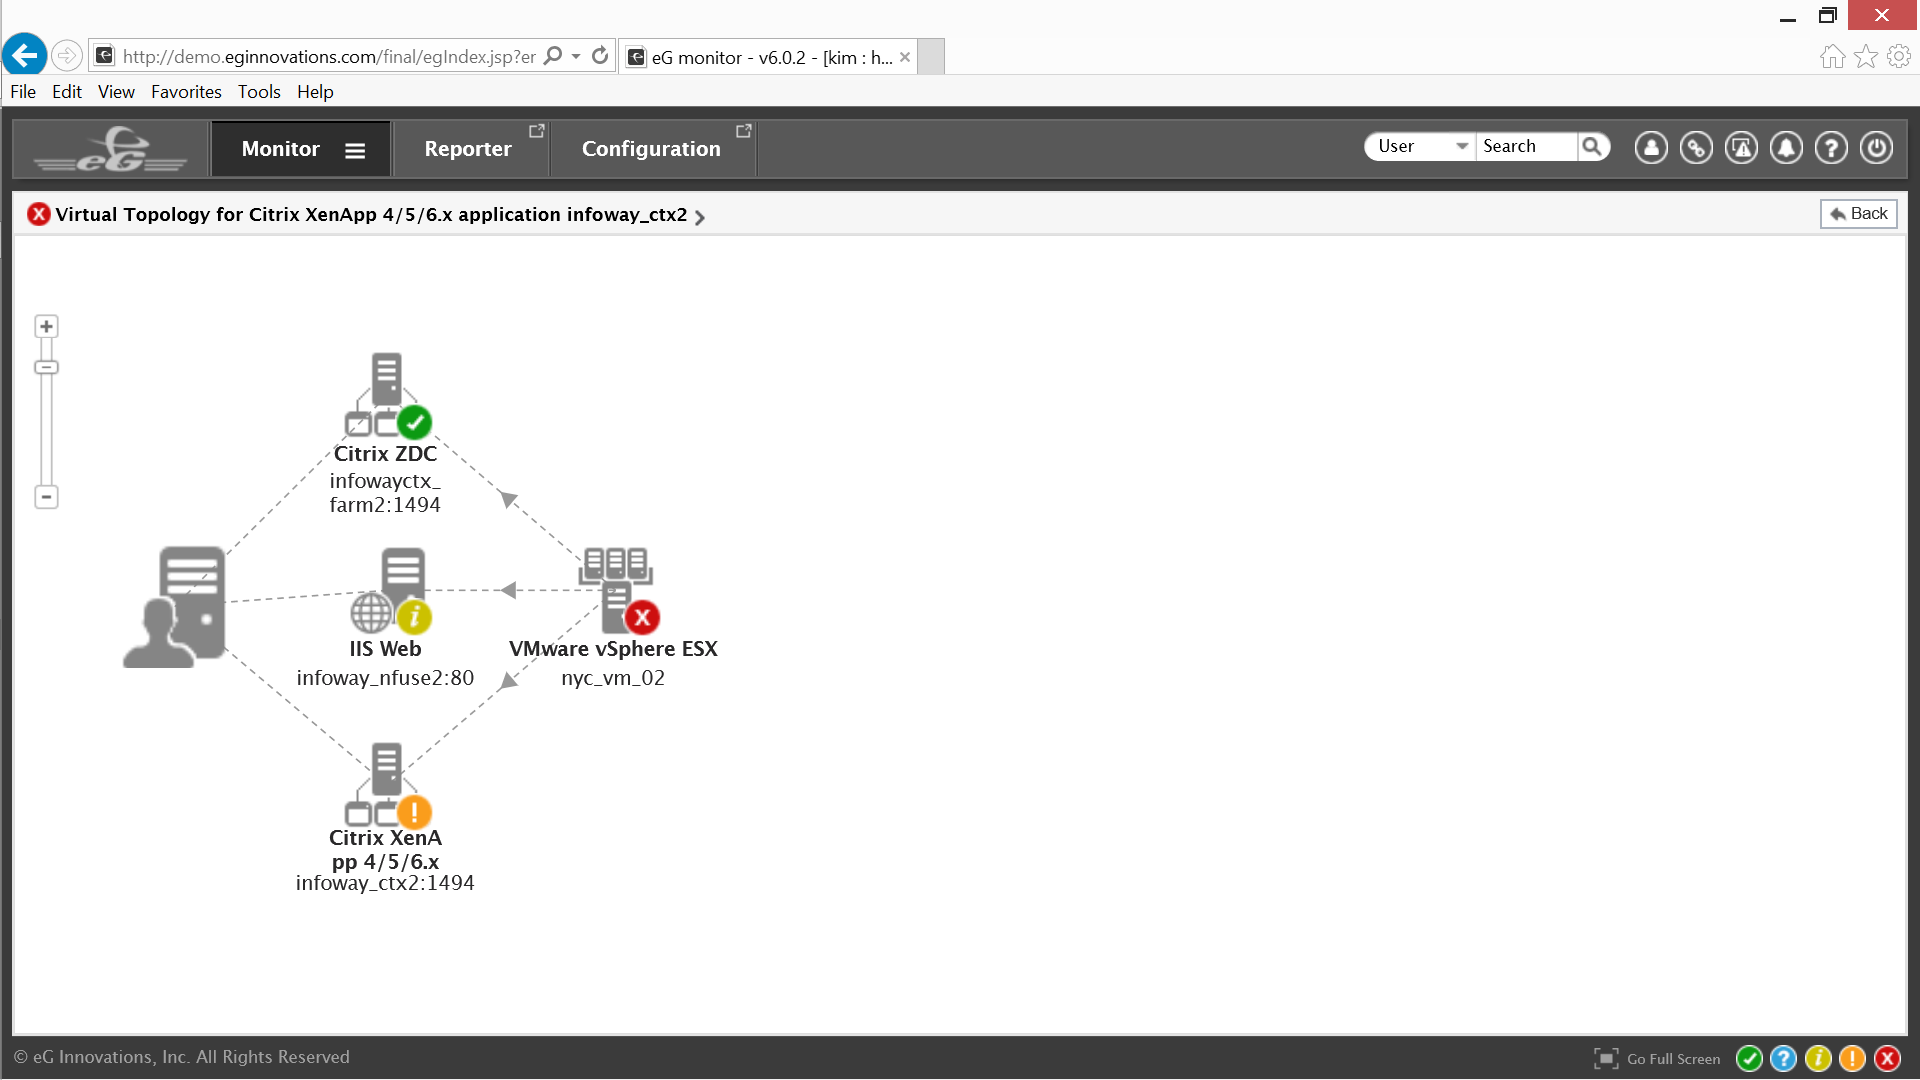 eG Virtual Citrix XenApp Topology Window for Blog